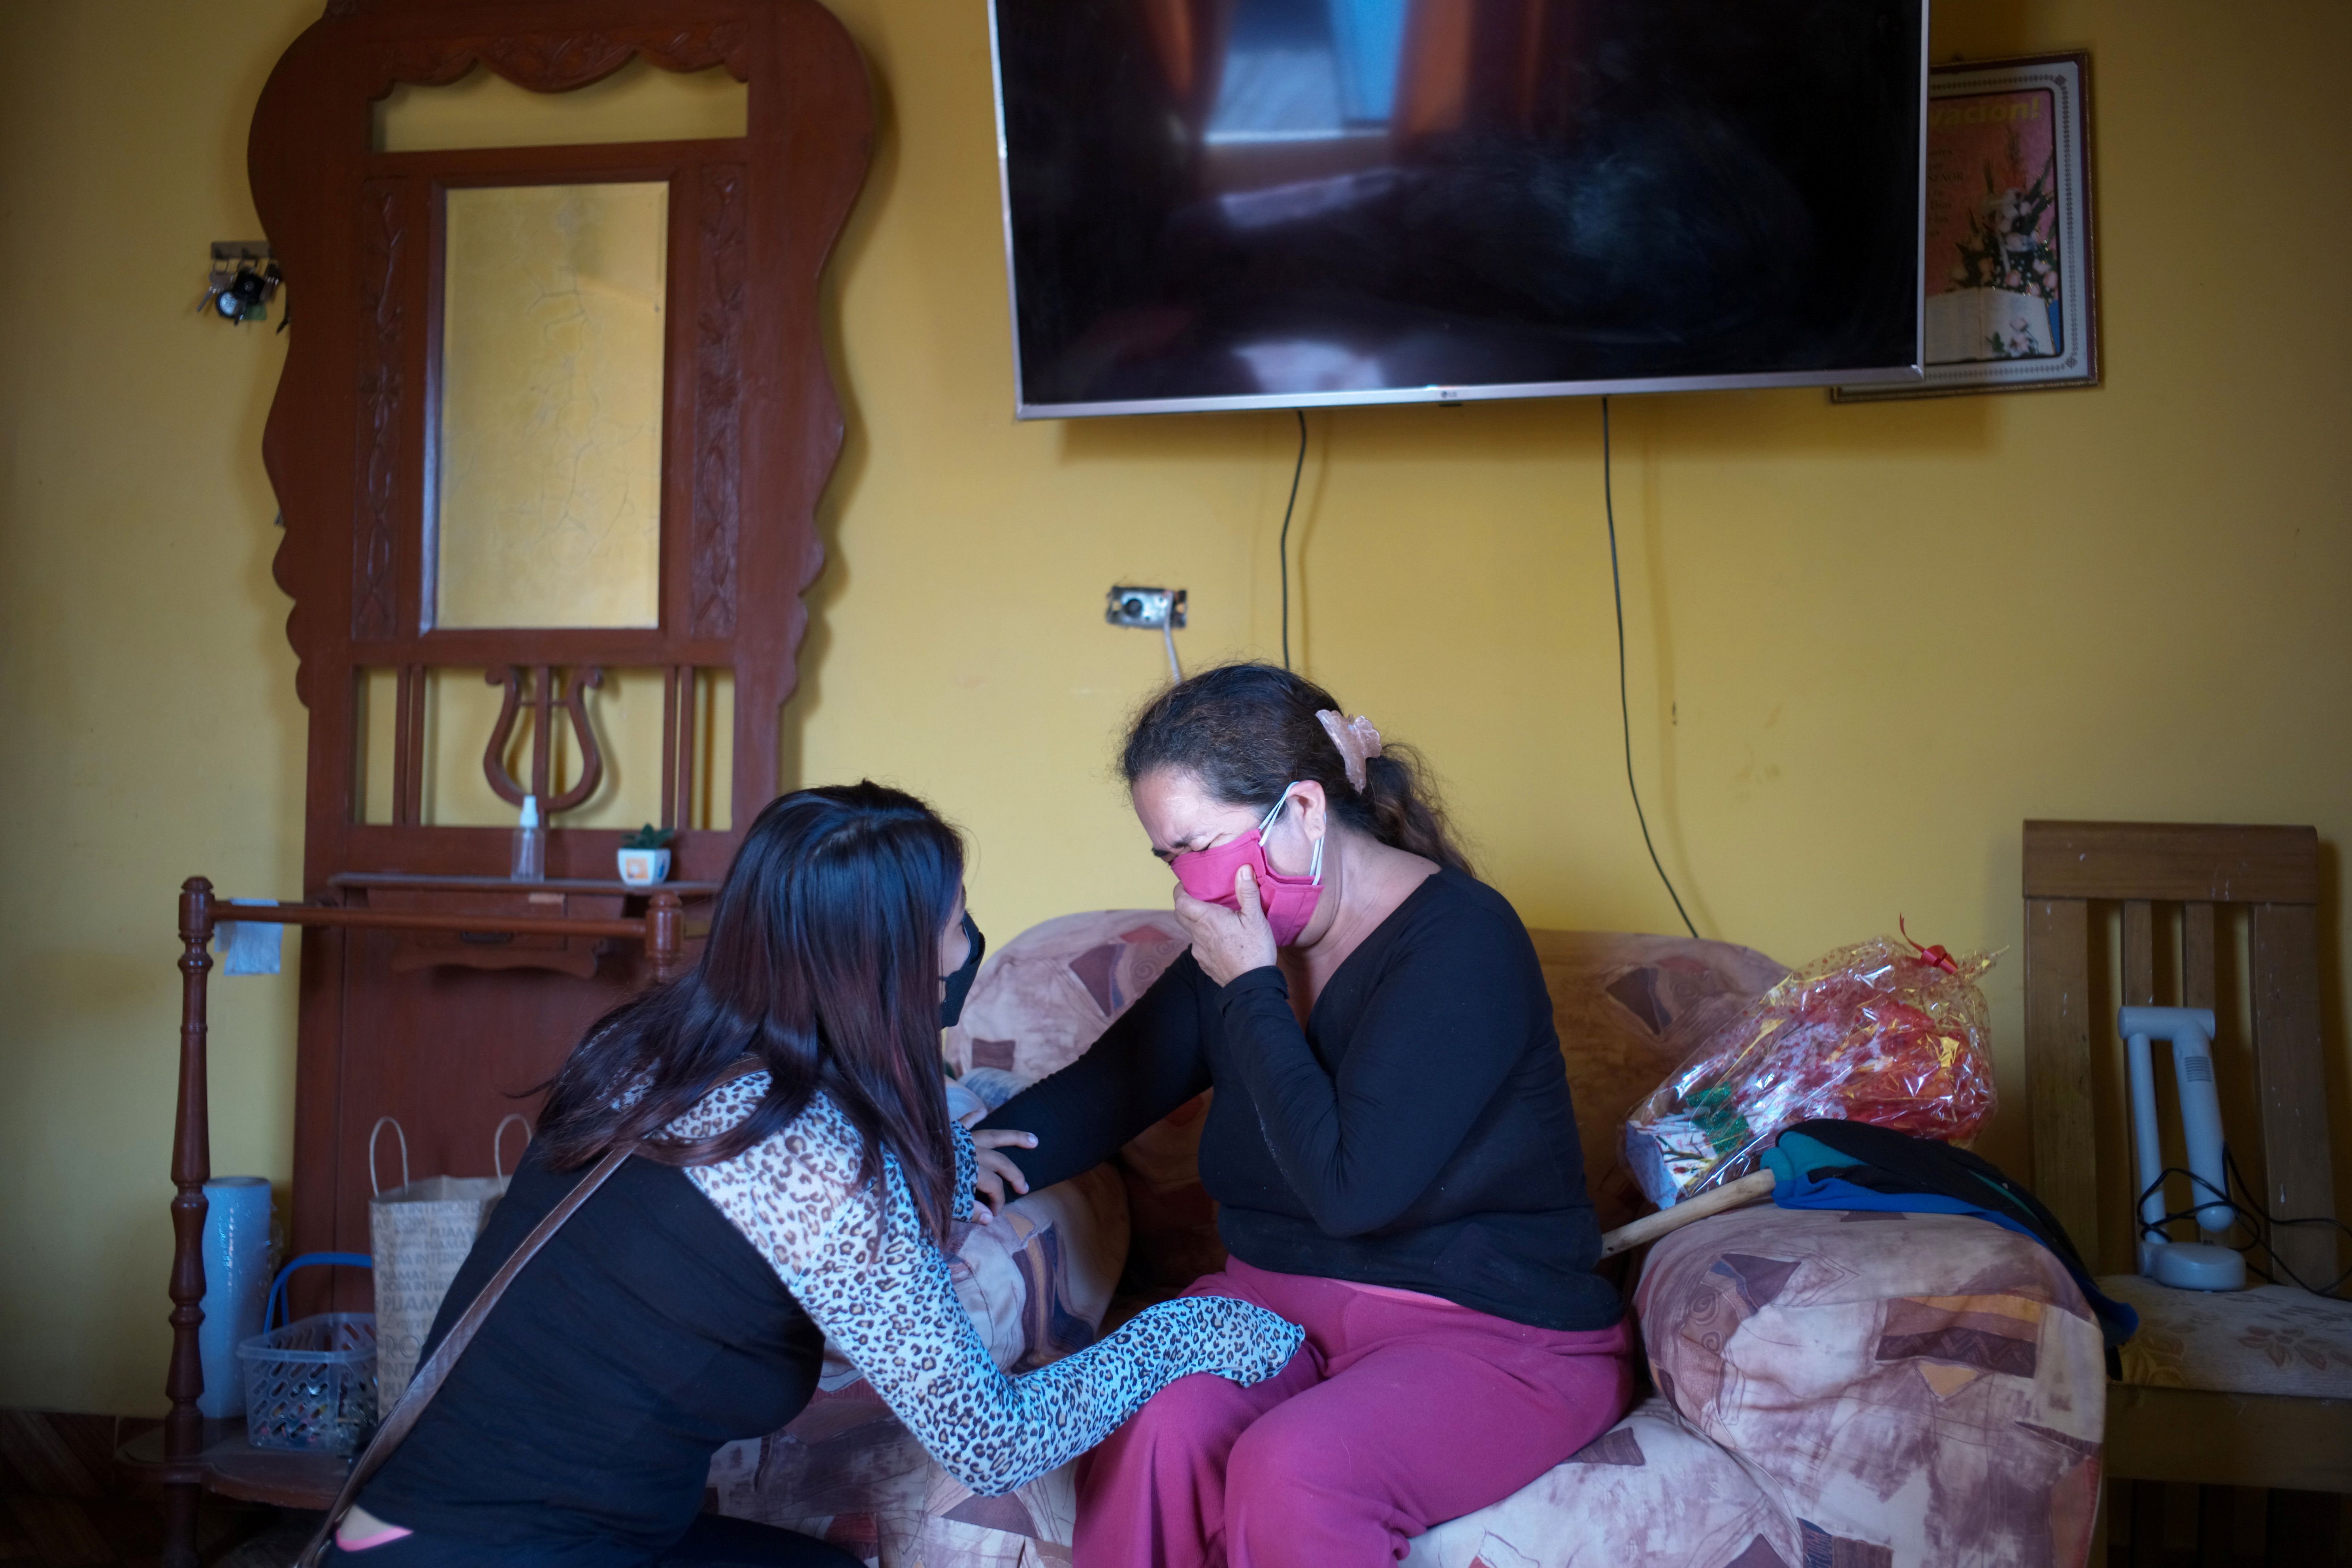 Hellen Nanez, who lost 13 relatives to the coronavirus disease (COVID-19) and whose father Guillermo Alejandro Nanez is being treated for COVID-19 in the Intensive Care Unit, comforts her aunt Paulina Nanez after telling her that Guillermo's conditions has worsened, in Pisco, Peru, May 10, 2021. REUTERS/Alessandro Cinque